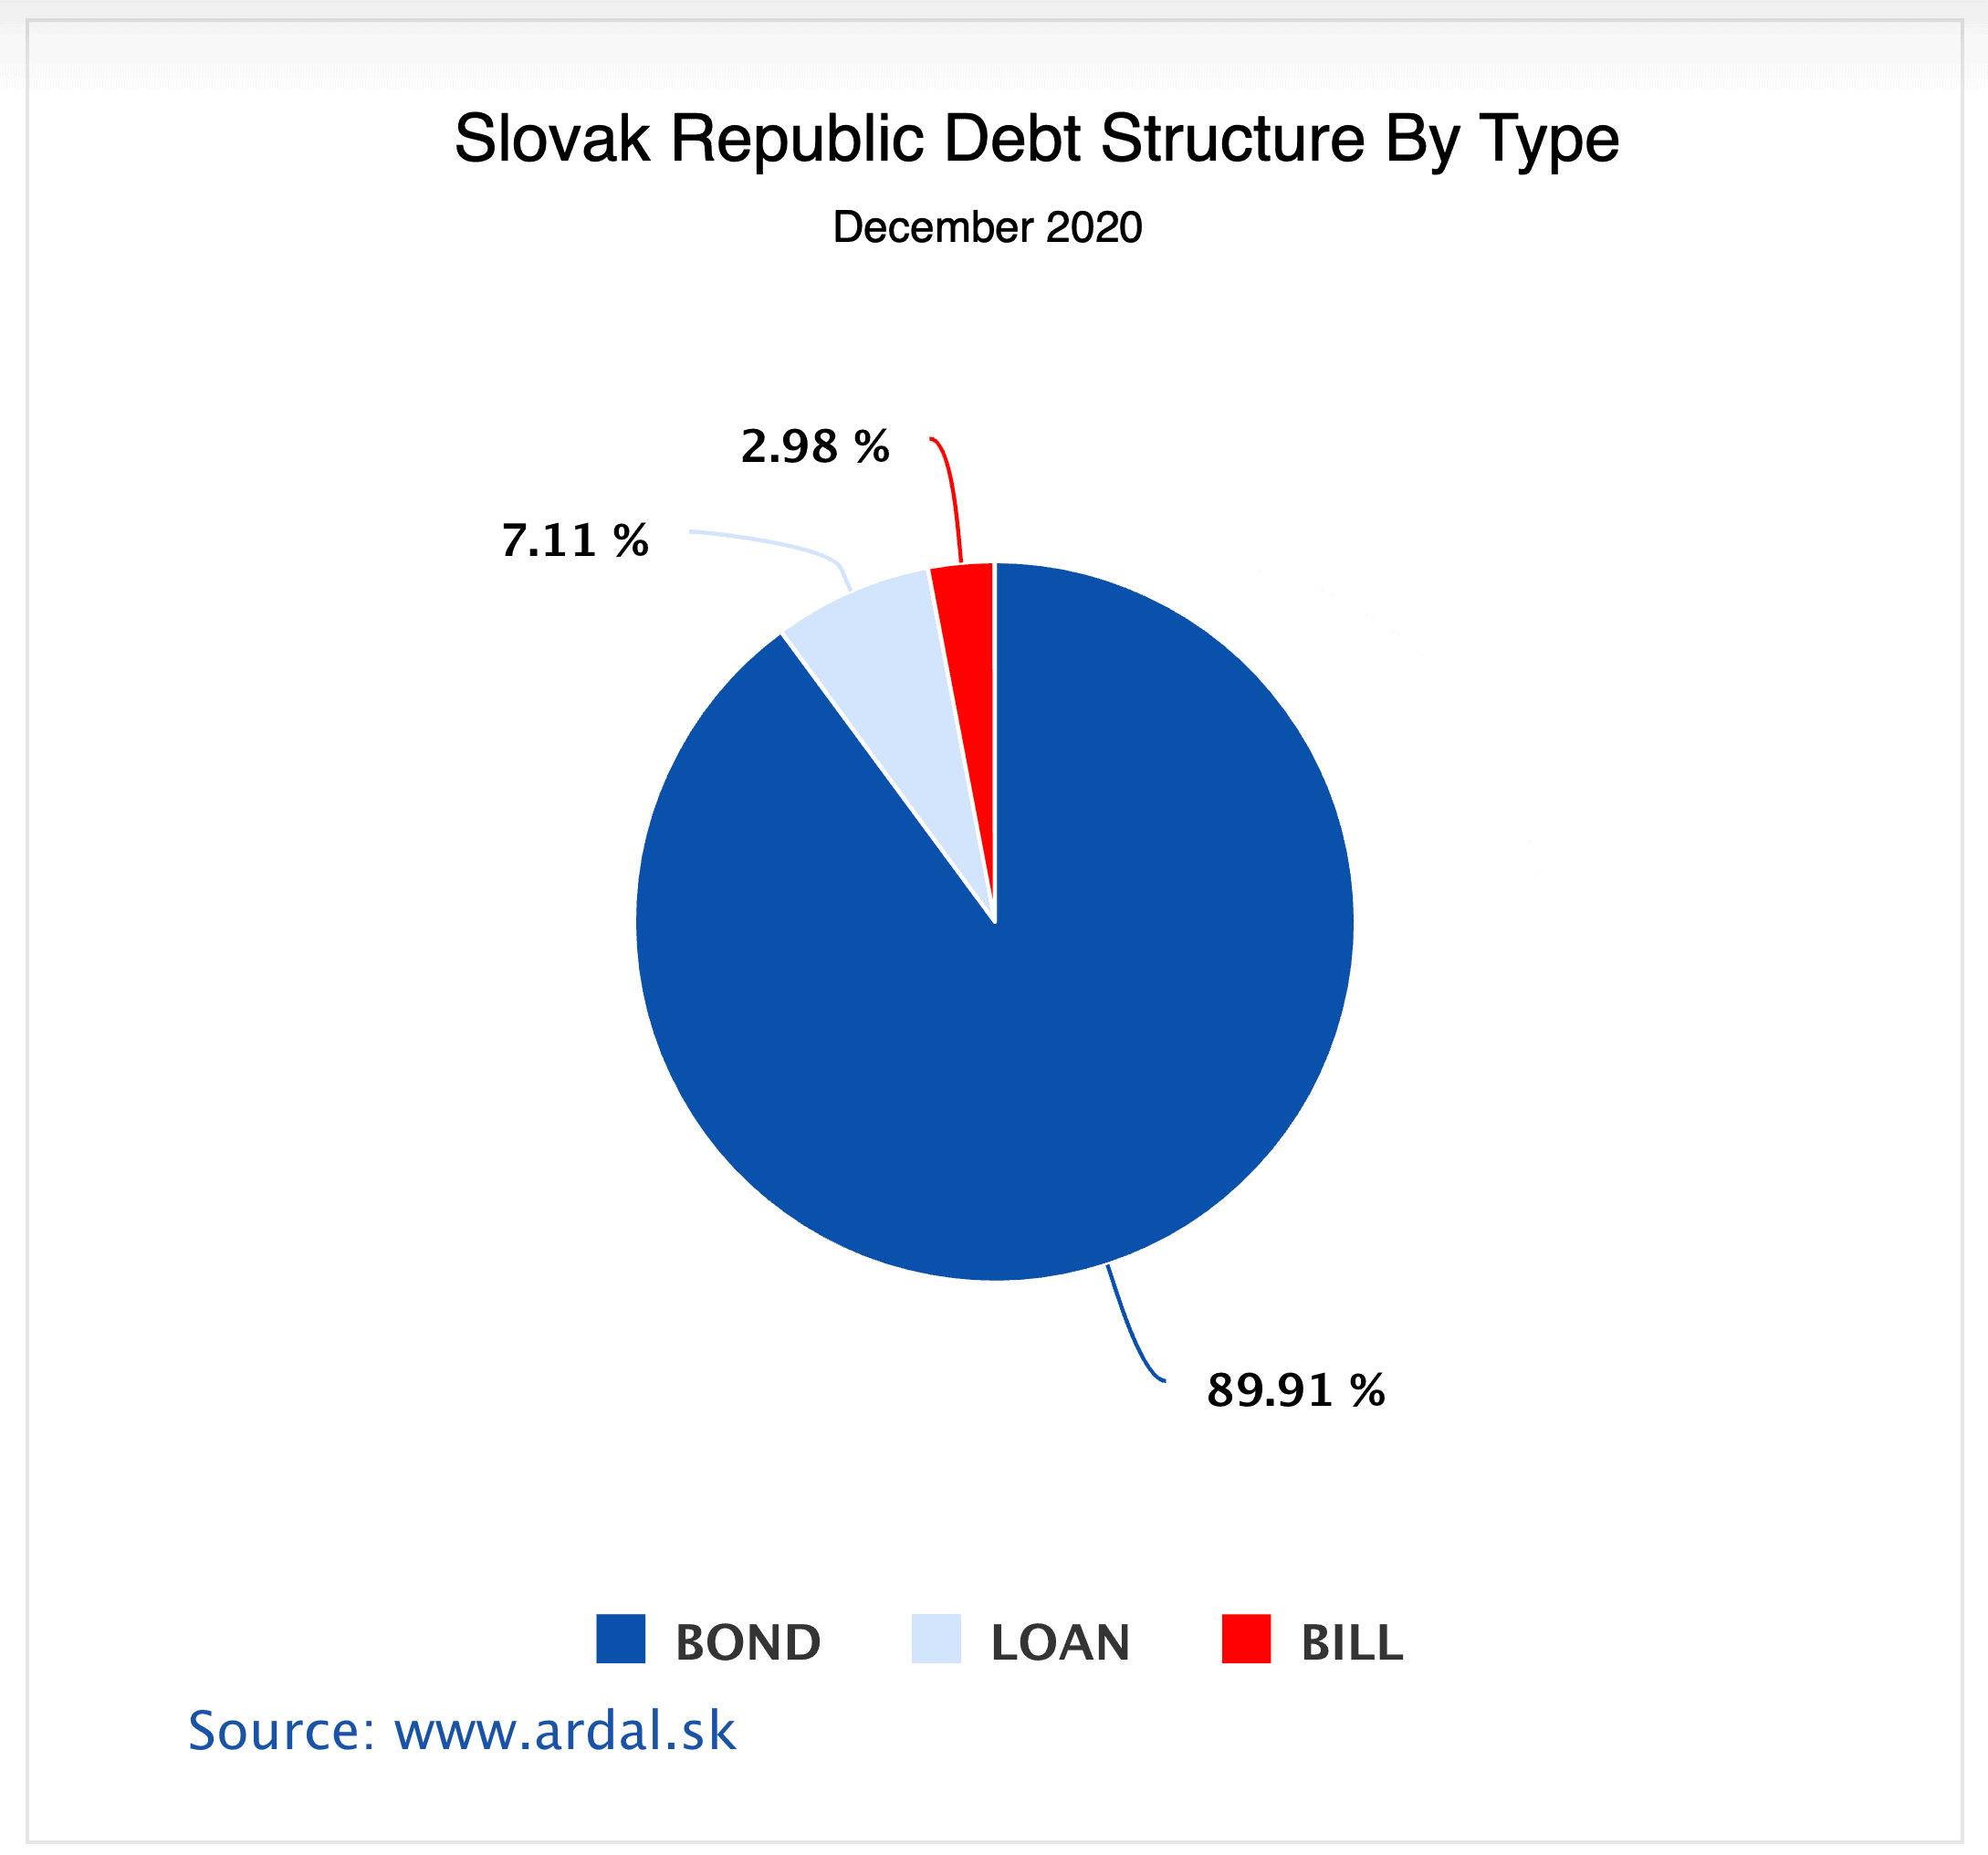 Slovak Debt Structure by Type